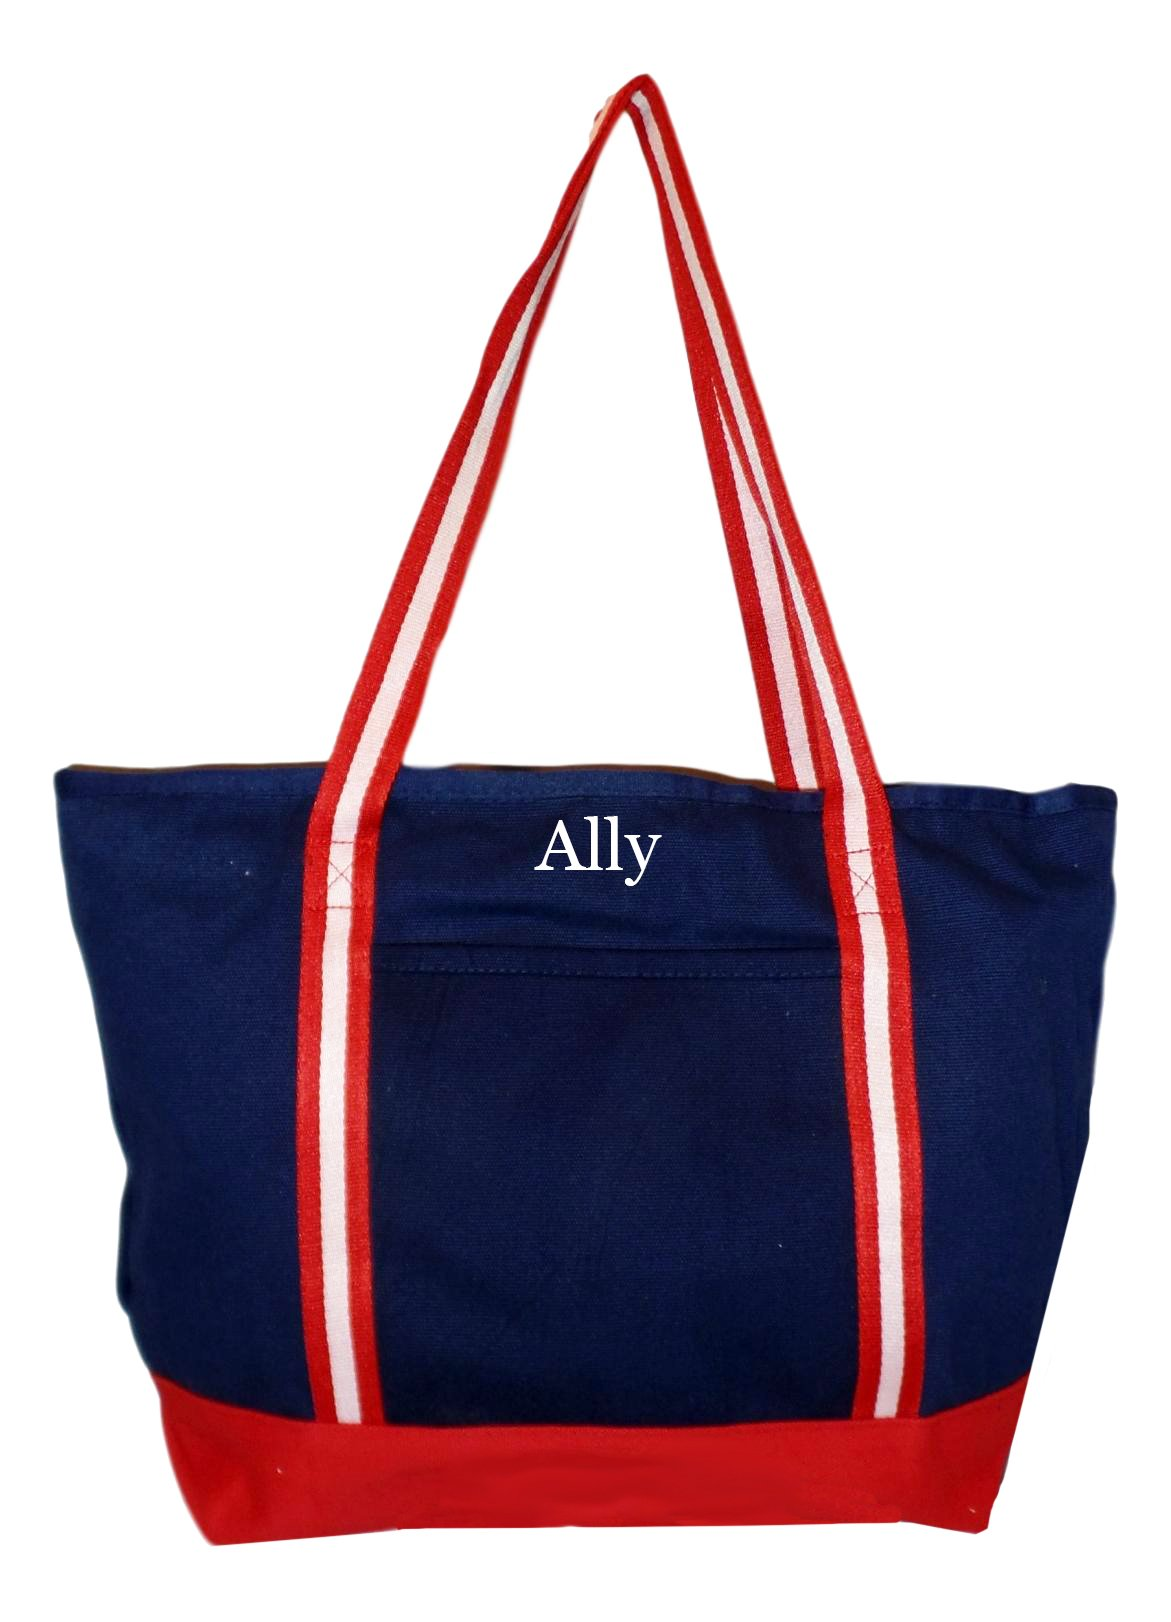 Premium Large 24 oz Cotton Canvas Zipper Top Tote Shopper Bag - Custom Available (Navy with Red White Straps - Embroidered Name)